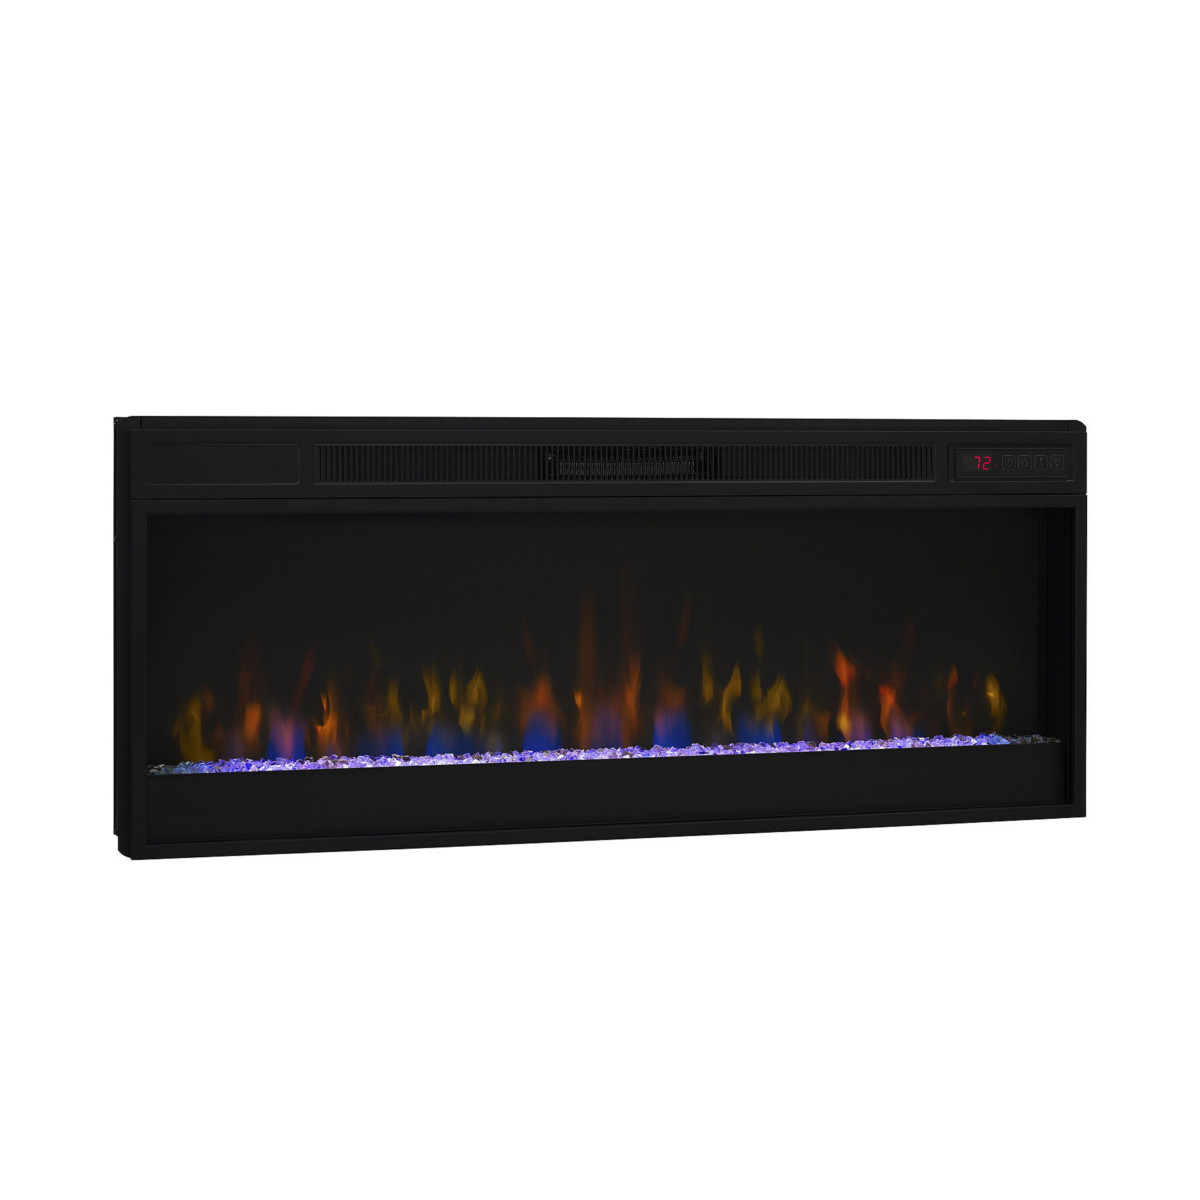 Classic Flame 42II033FGT 42 Quartz Infrared Fireplace